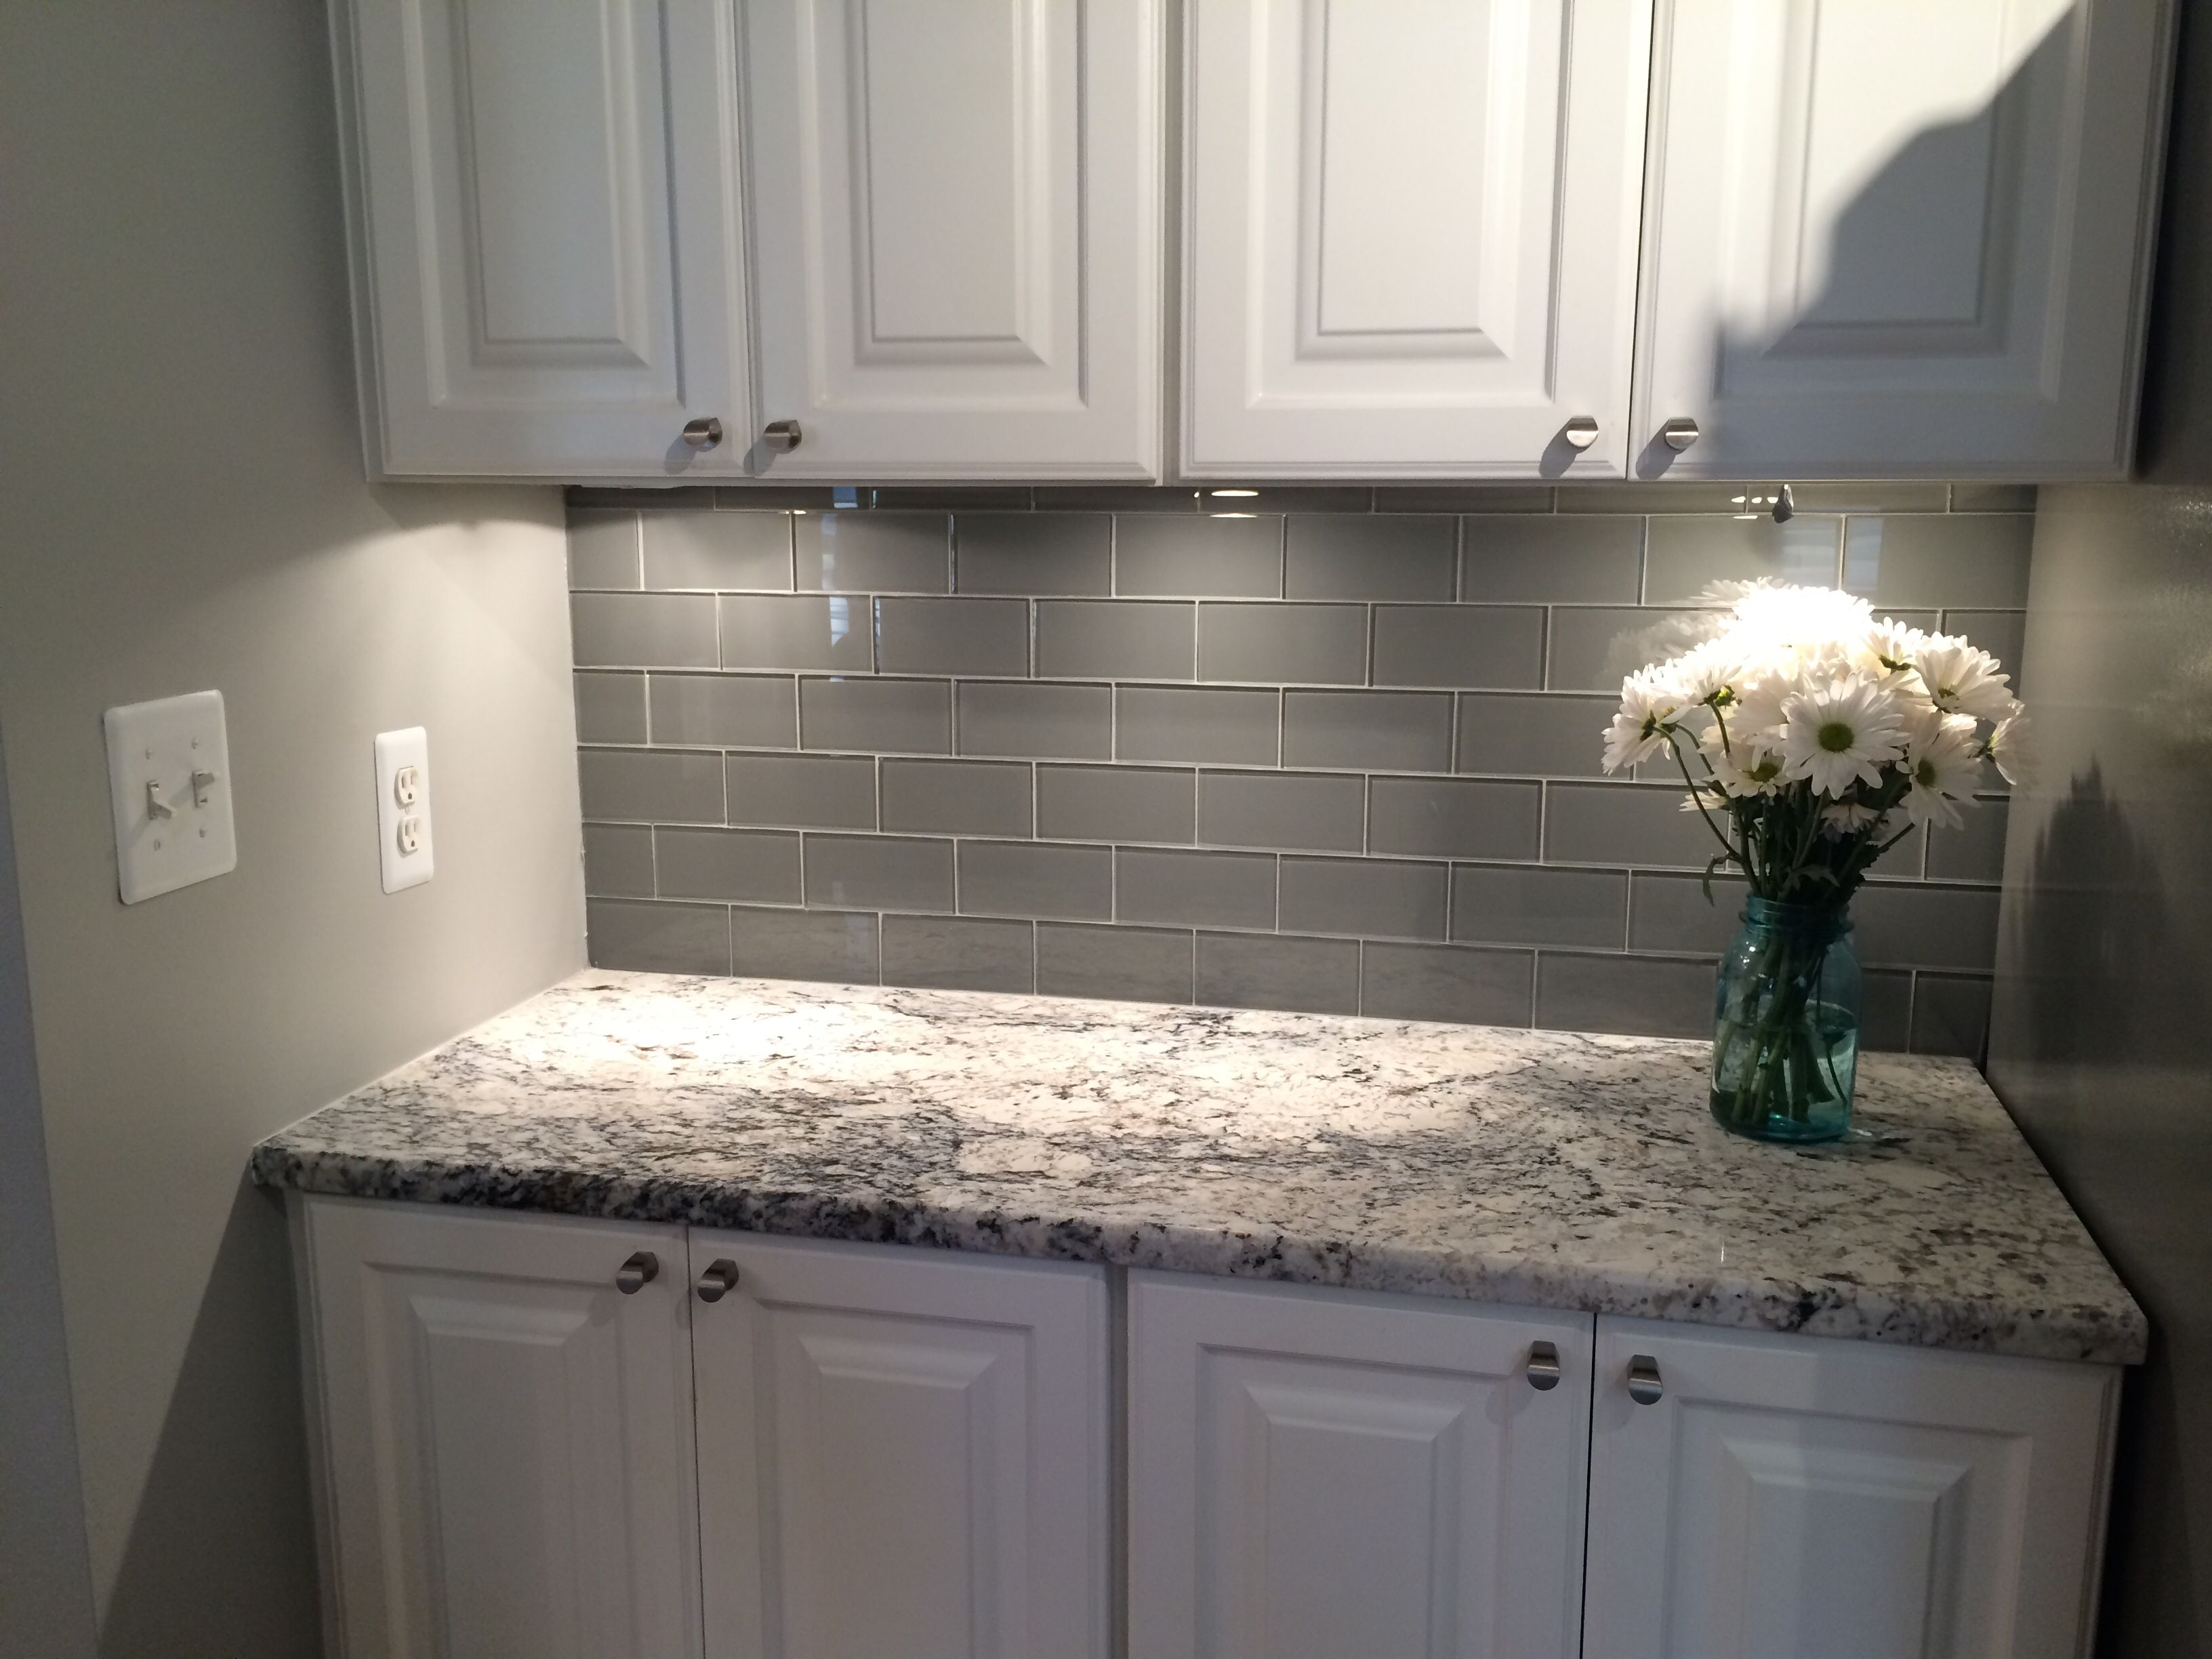 Uncategorized Small Tile Backsplash In Kitchen grey glass subway tile backsplash and white cabinet for small space